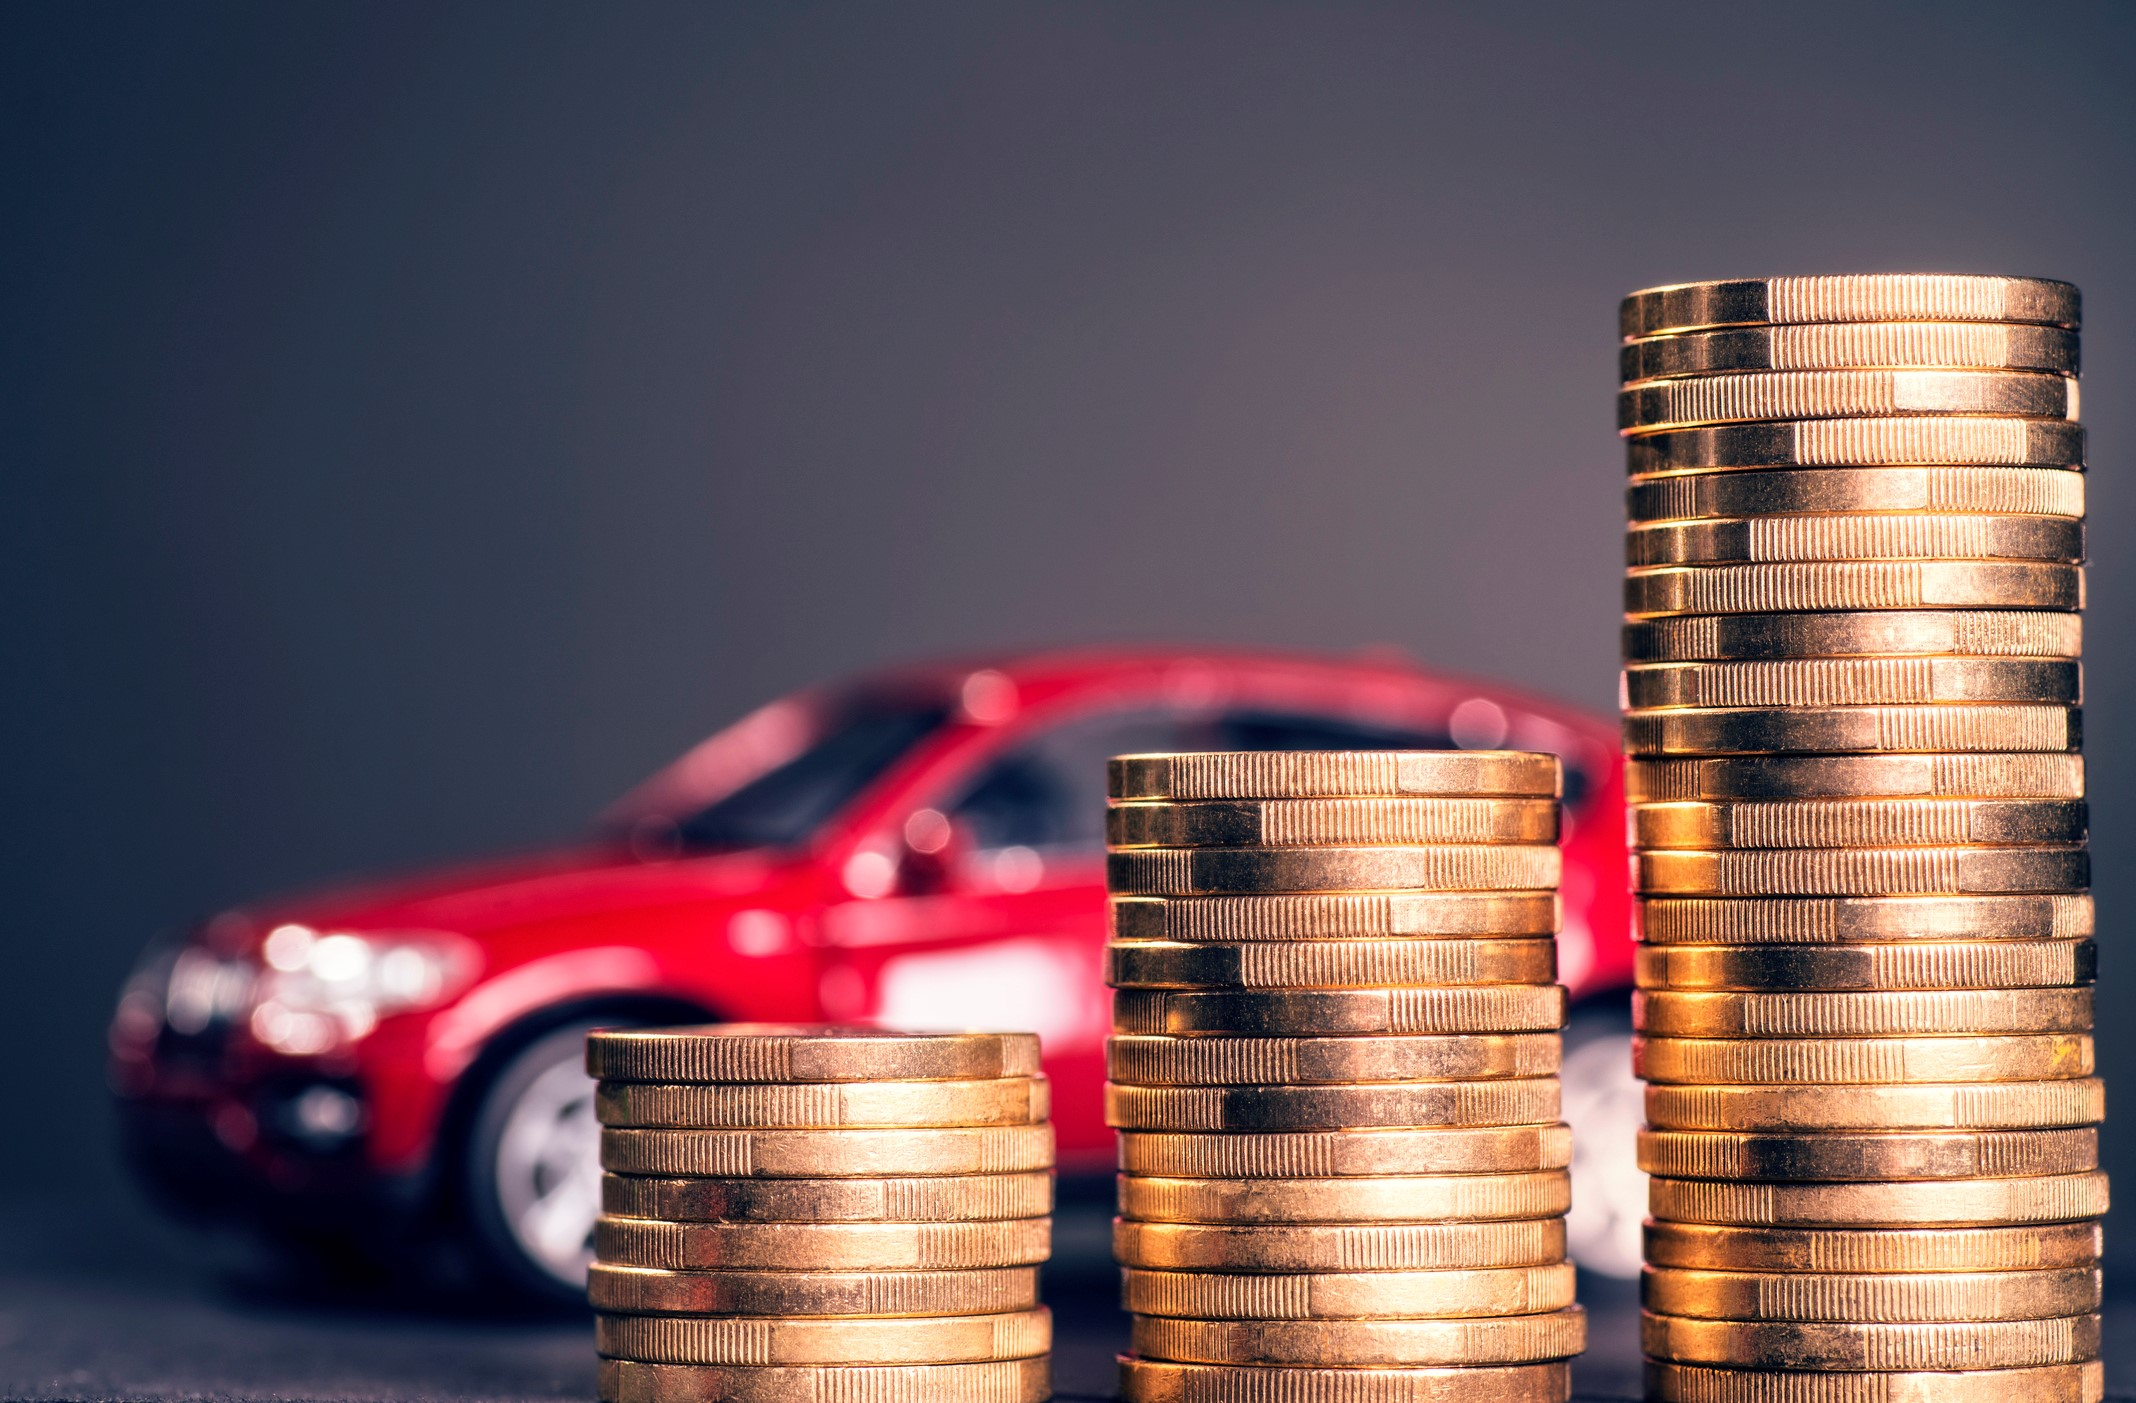 Rough Rates for Auto Insurance – What's Driving Recent Price Hikes? on avanteinsurance.com